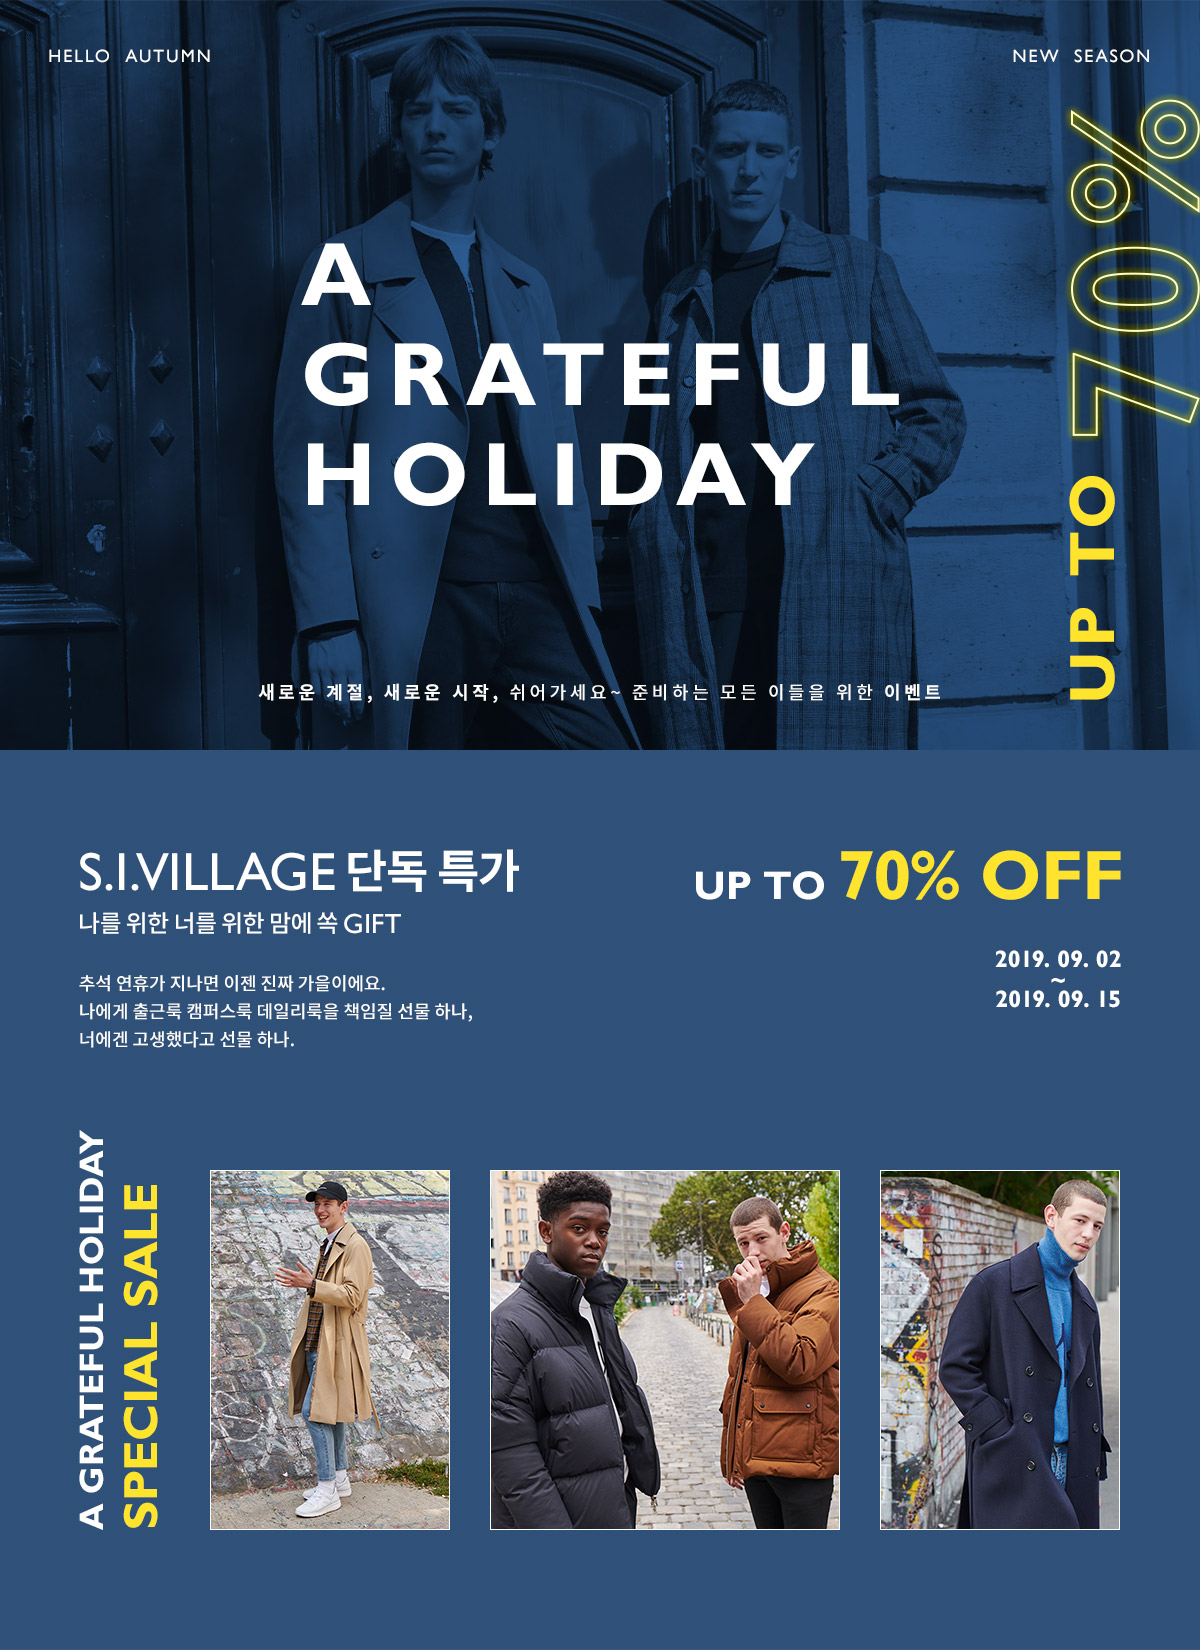 [COMODO] A GRATEFUL HOLIDAY 최대 70% 할인